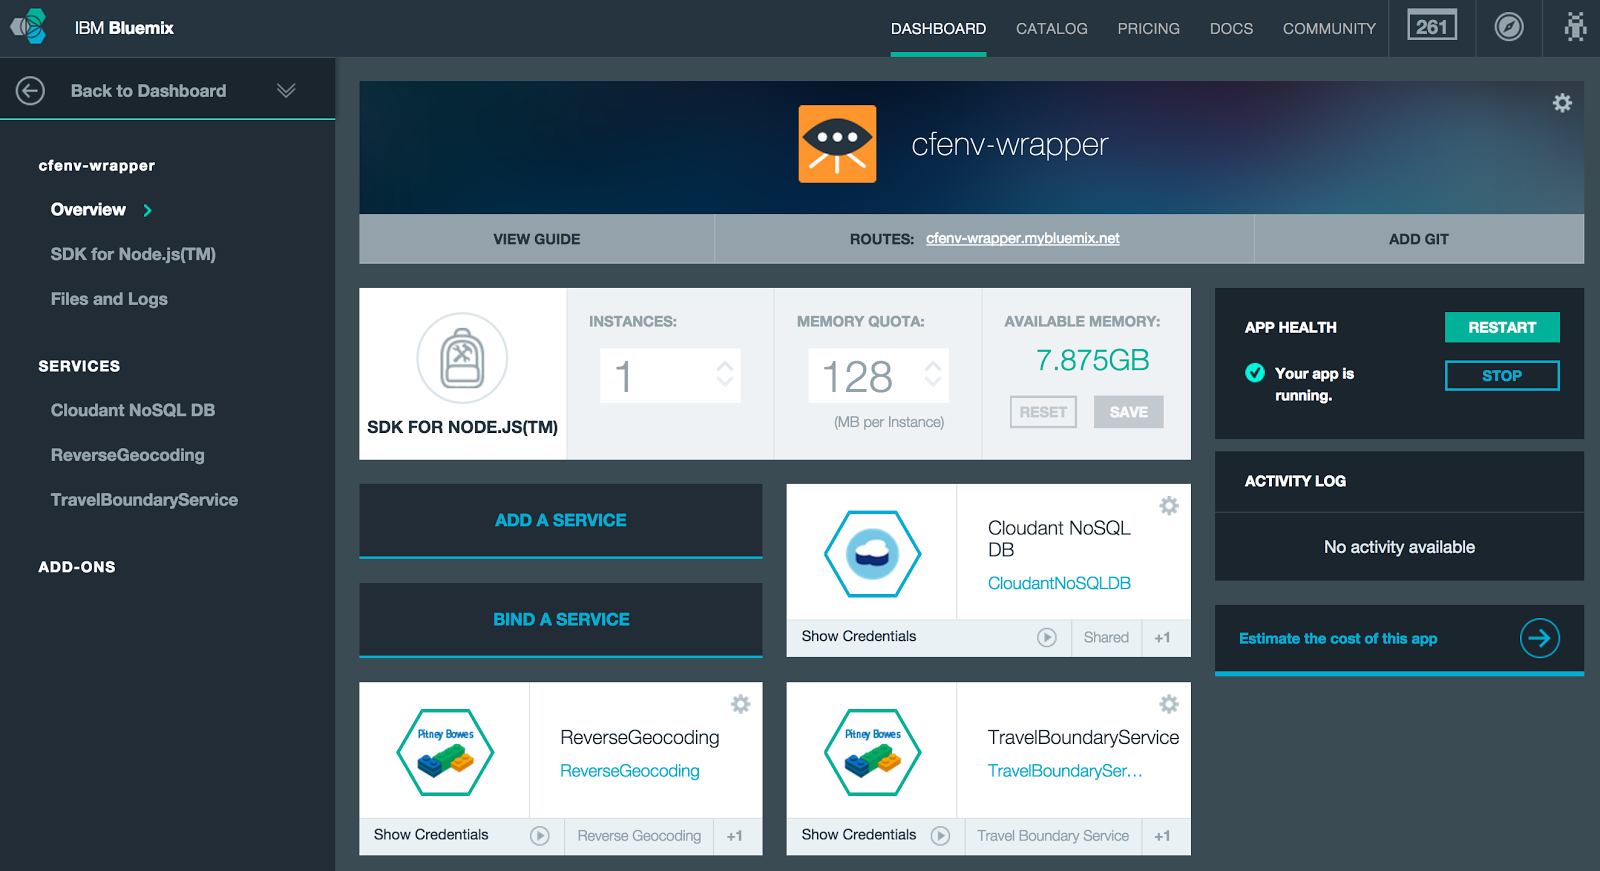 Bluemix UI: App Details for cfenv-wrapper